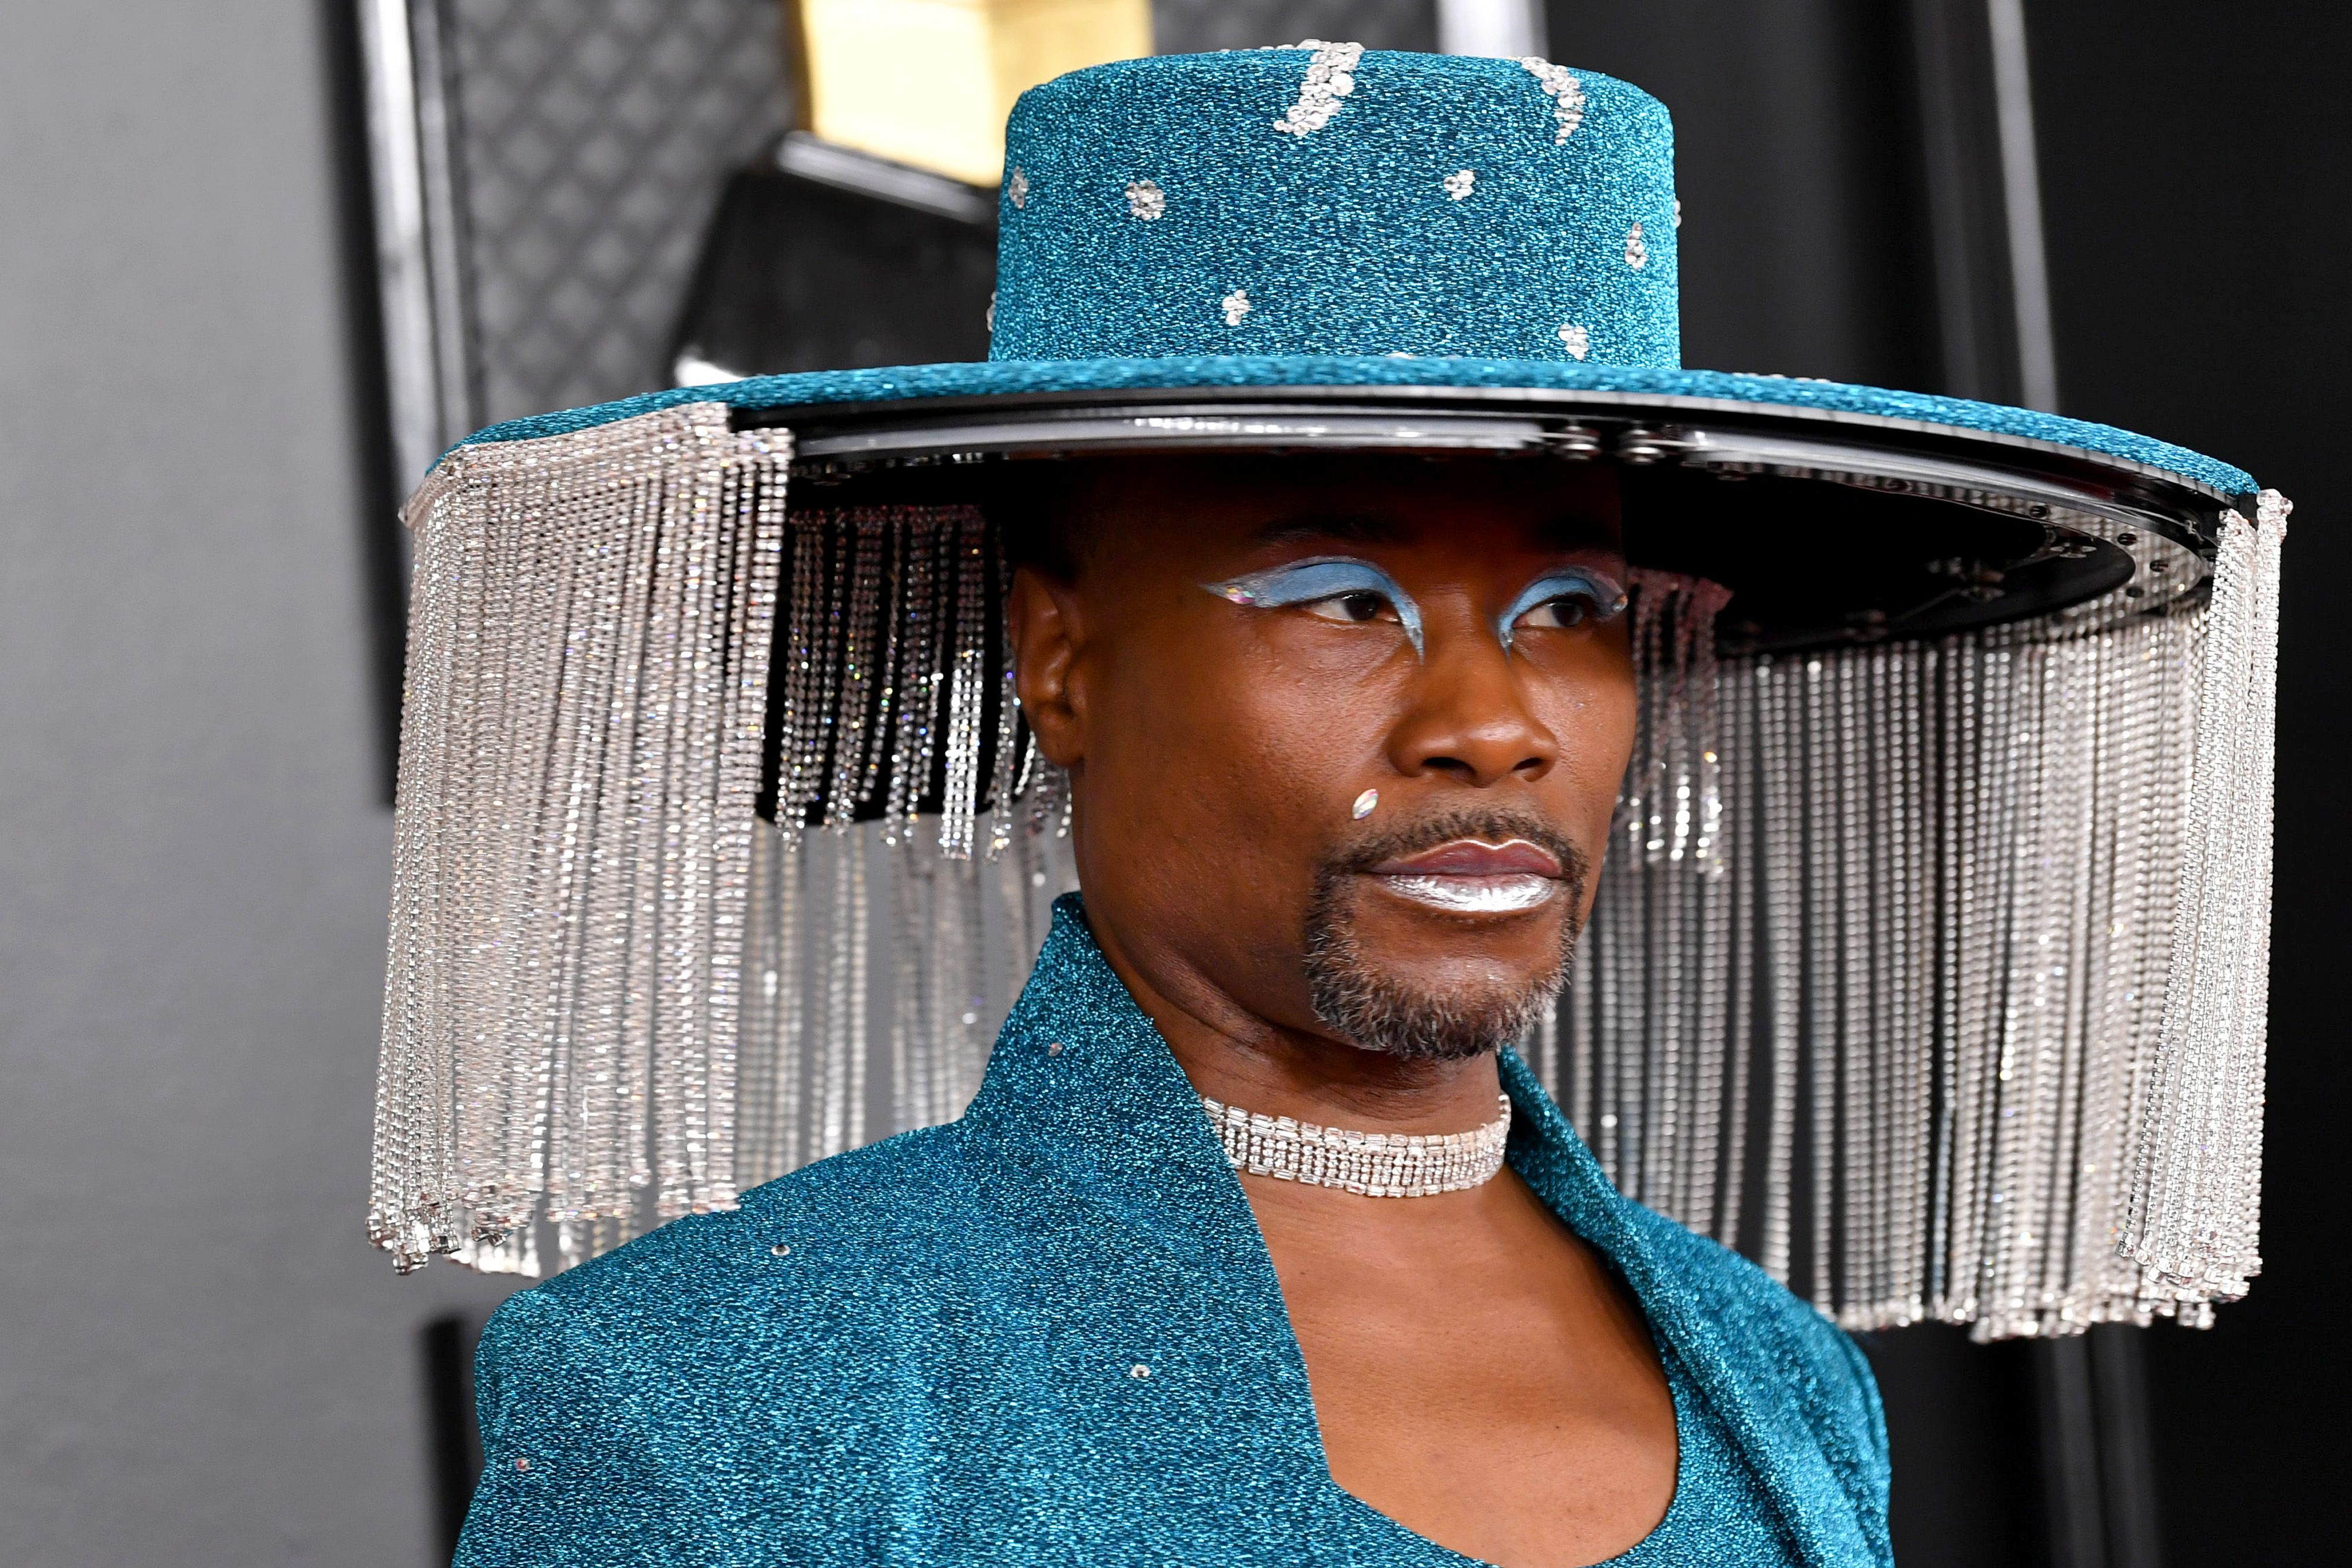 Billy Porter Brought Fringe Benefits to the 2020 Grammy Awards